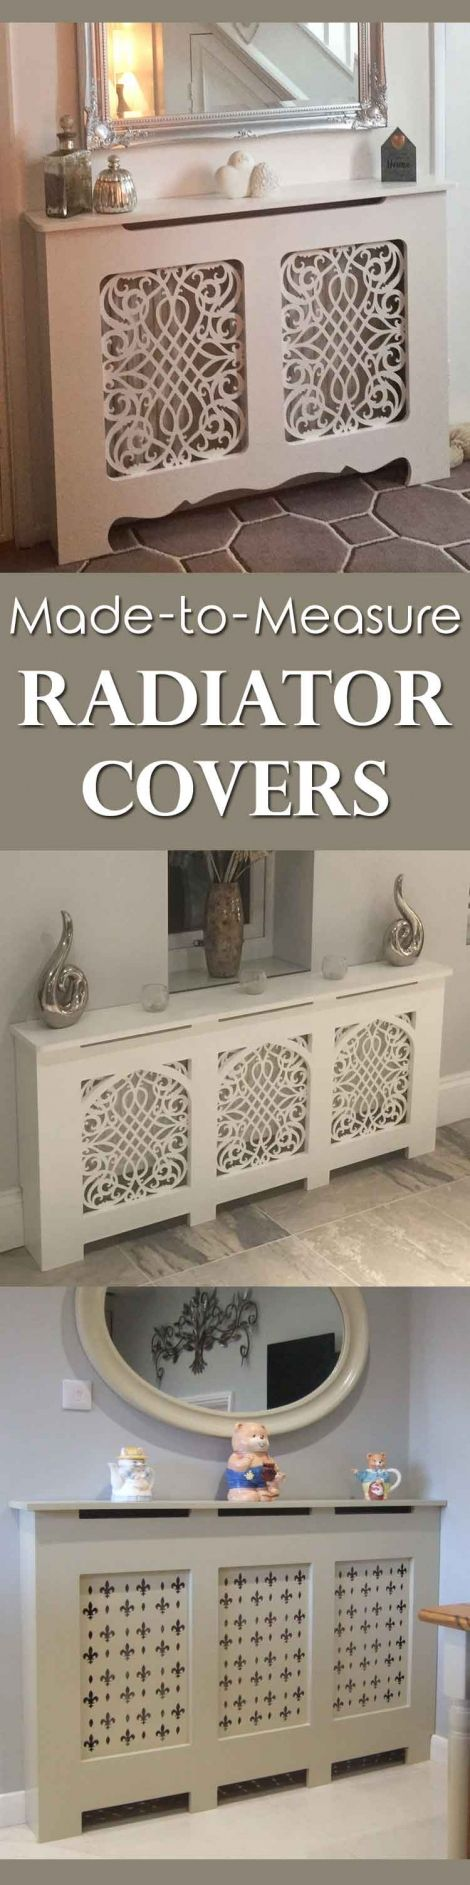 Custom Made Radiator Covers - Behind the Scenes